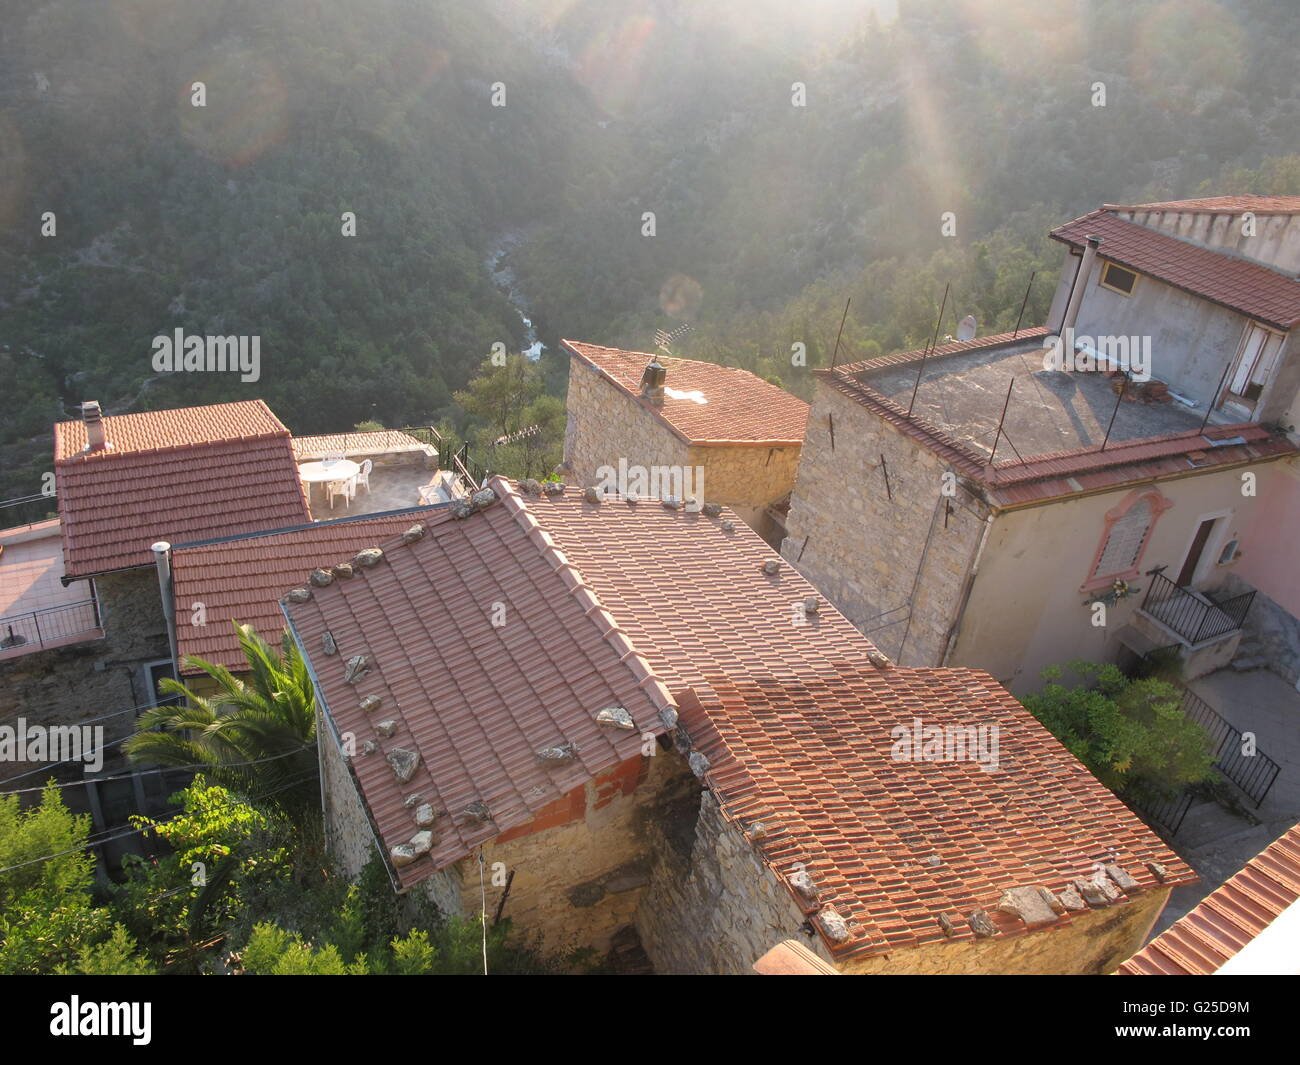 Italy Colabassa Clay Tile Roofs Of Village Houses This